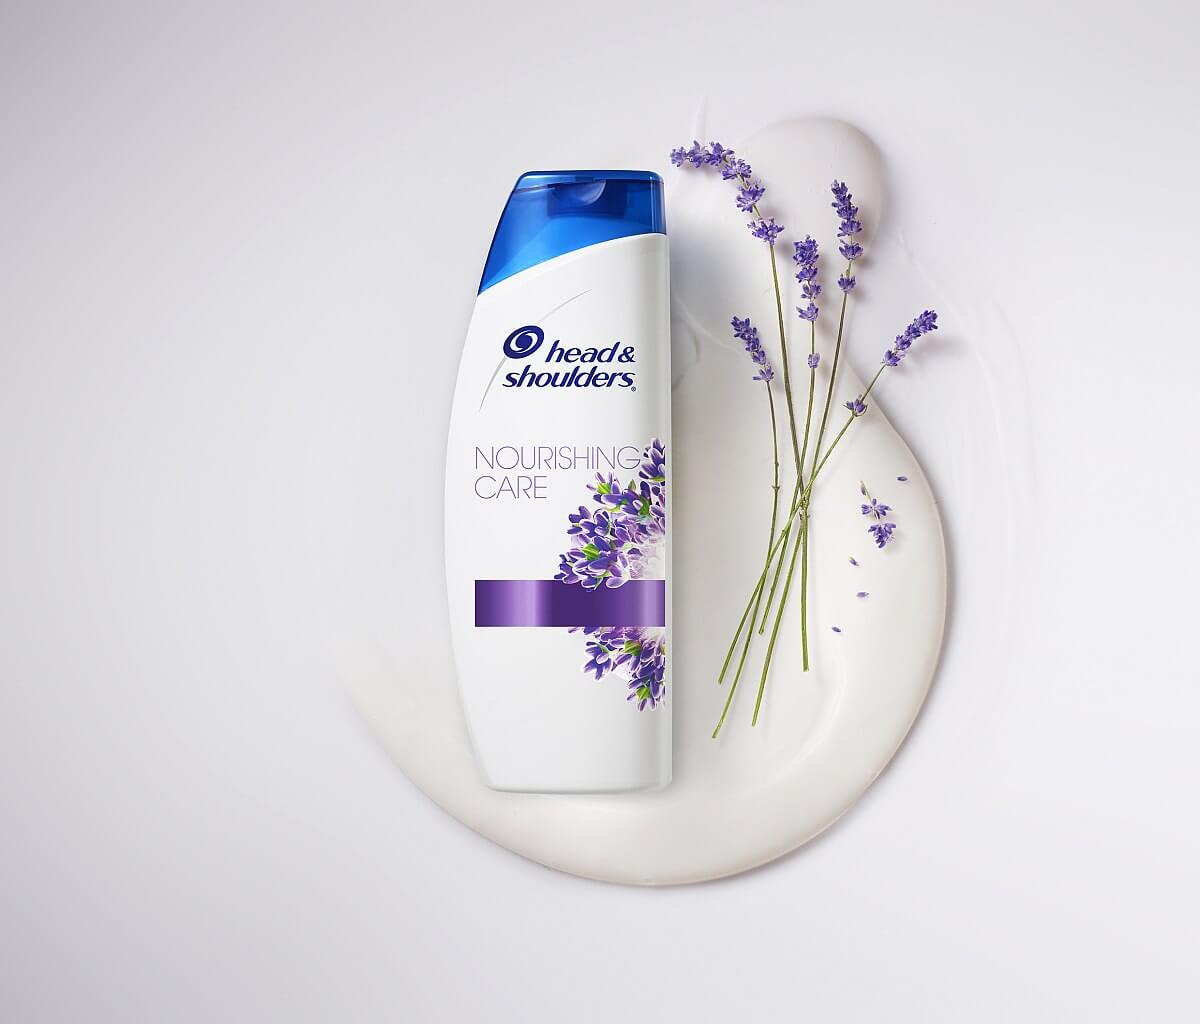 Head & Shoulders Nourishing Care